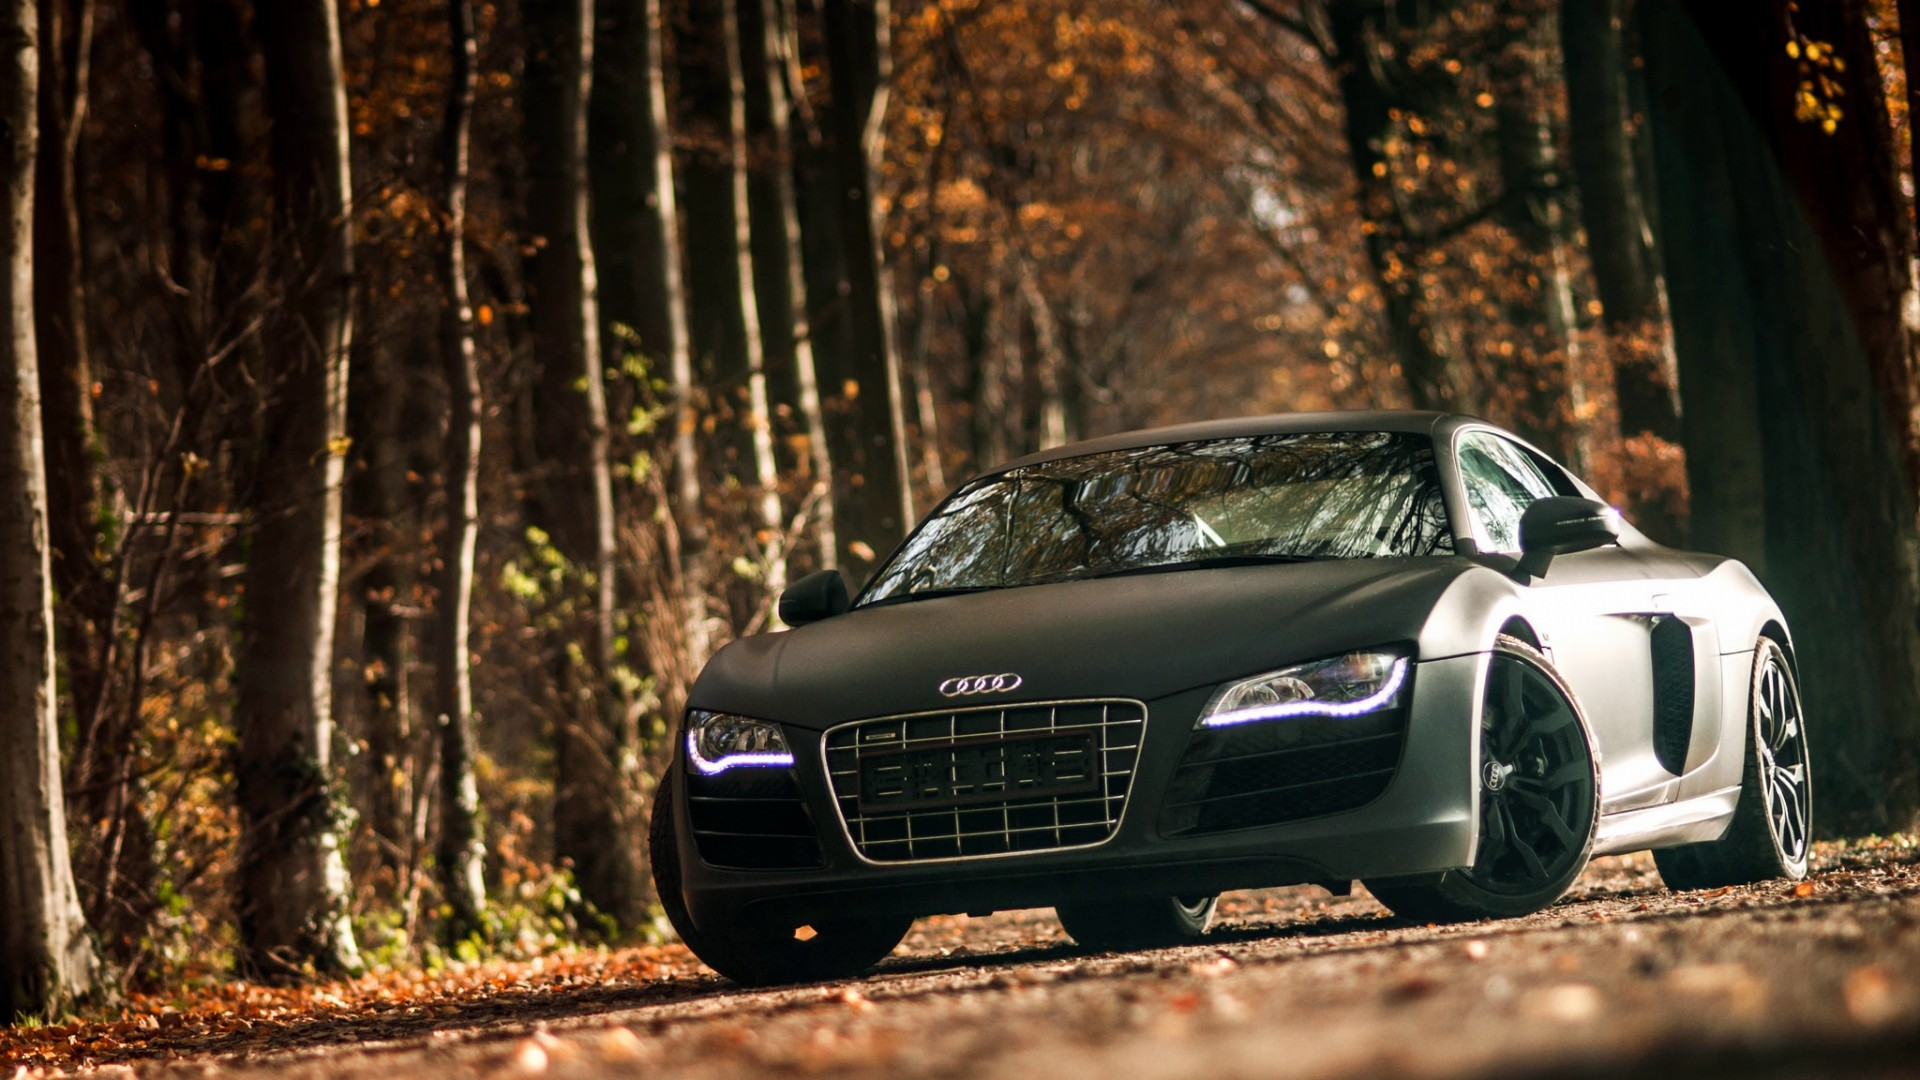 Audi r8 wallpaper 1920x1080 85 images - Cars hd wallpapers for laptop ...